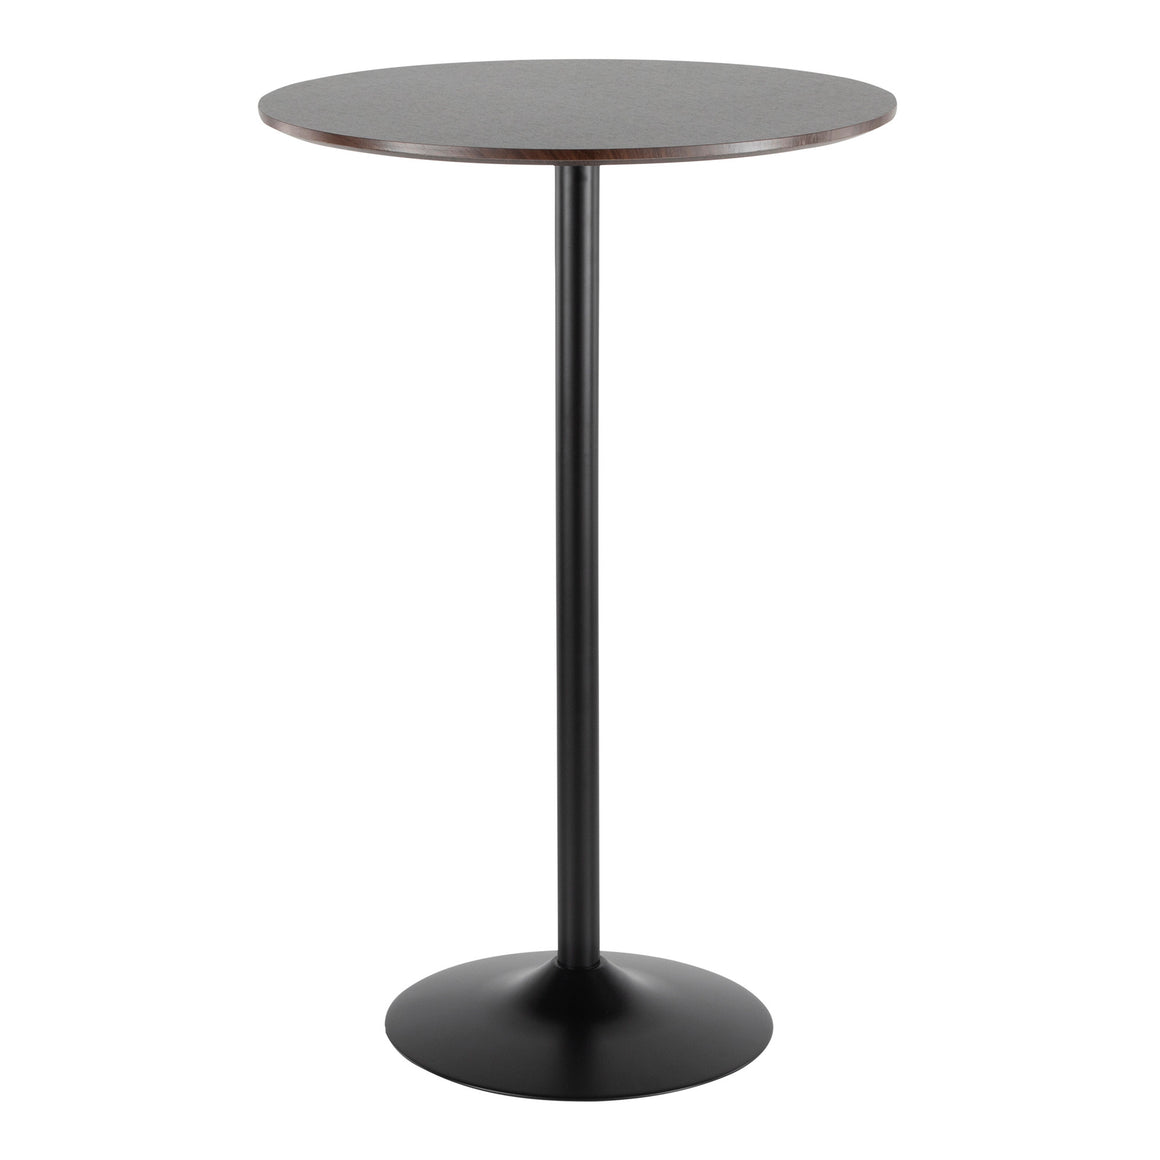 Pebble Mid-Century Modern Adjustable Dining to Bar Table in Black Metal and Espresso by LumiSource